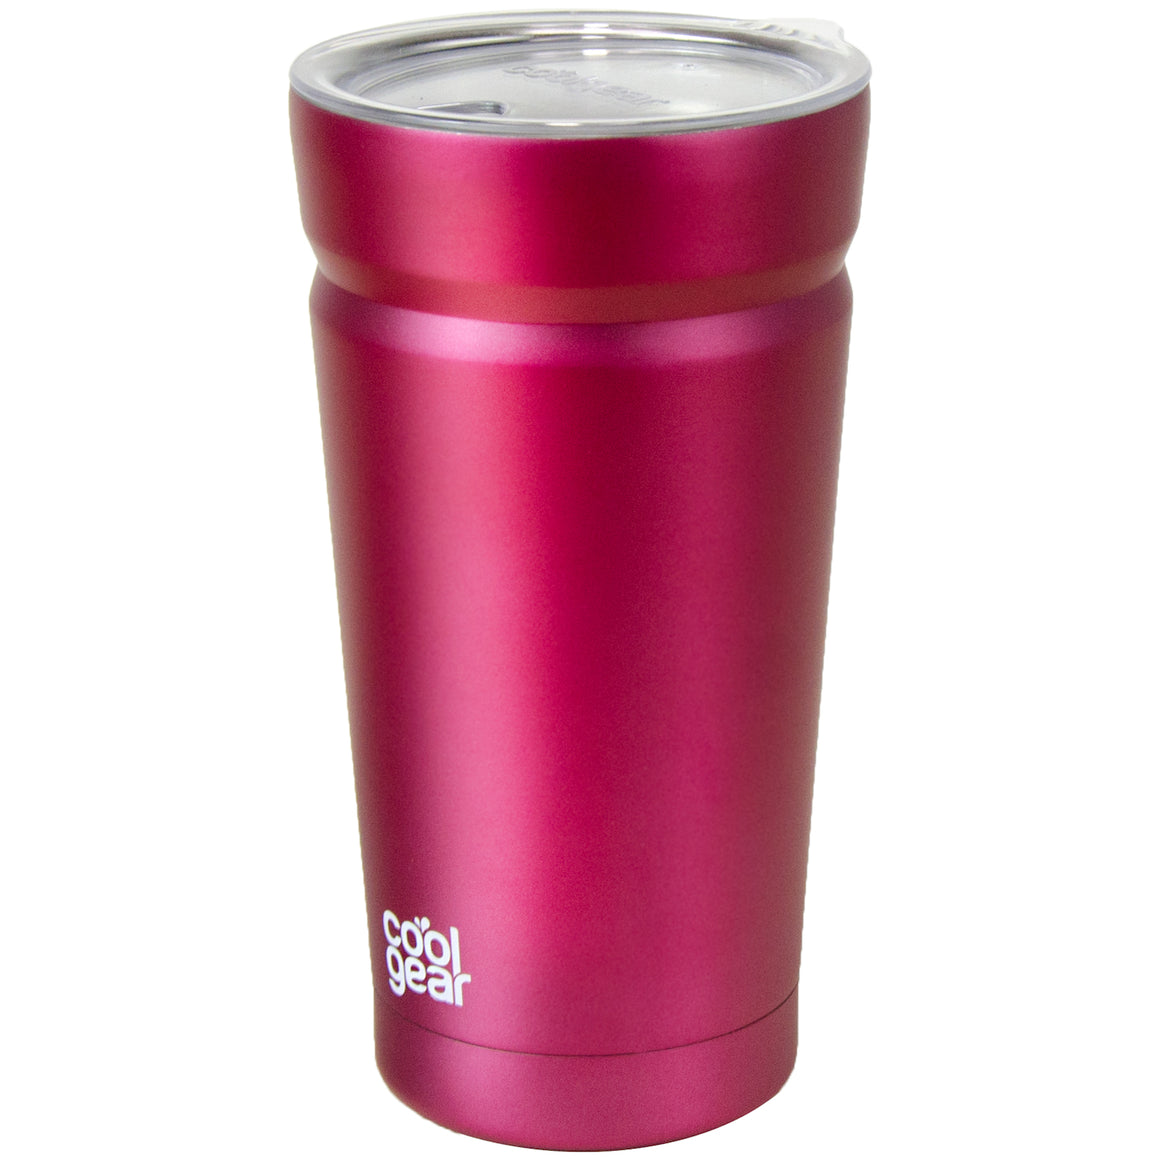 b3d470373d91 Cool Gear | Water Bottles, Tumblers, Drink Cans, Travel Mugs